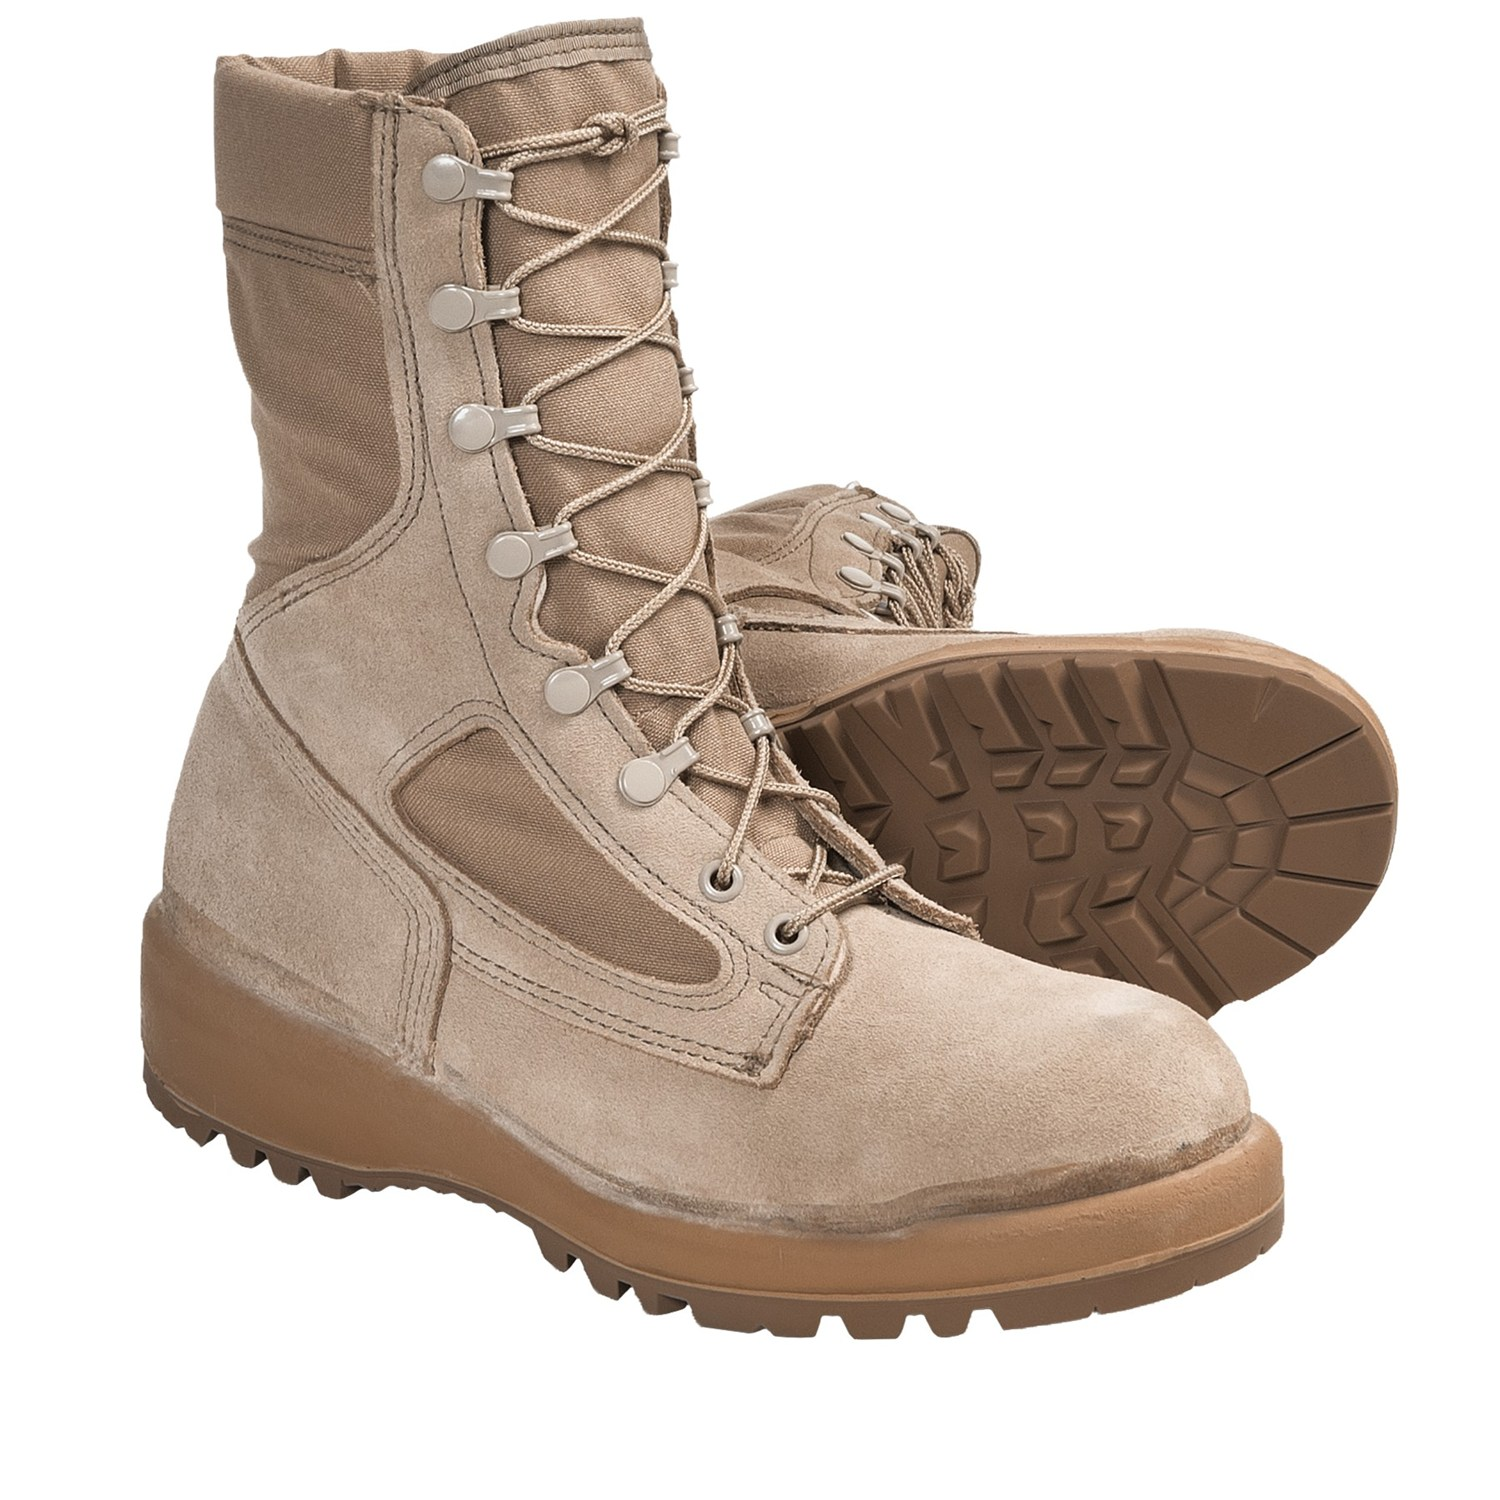 clipart of military boots - photo #41